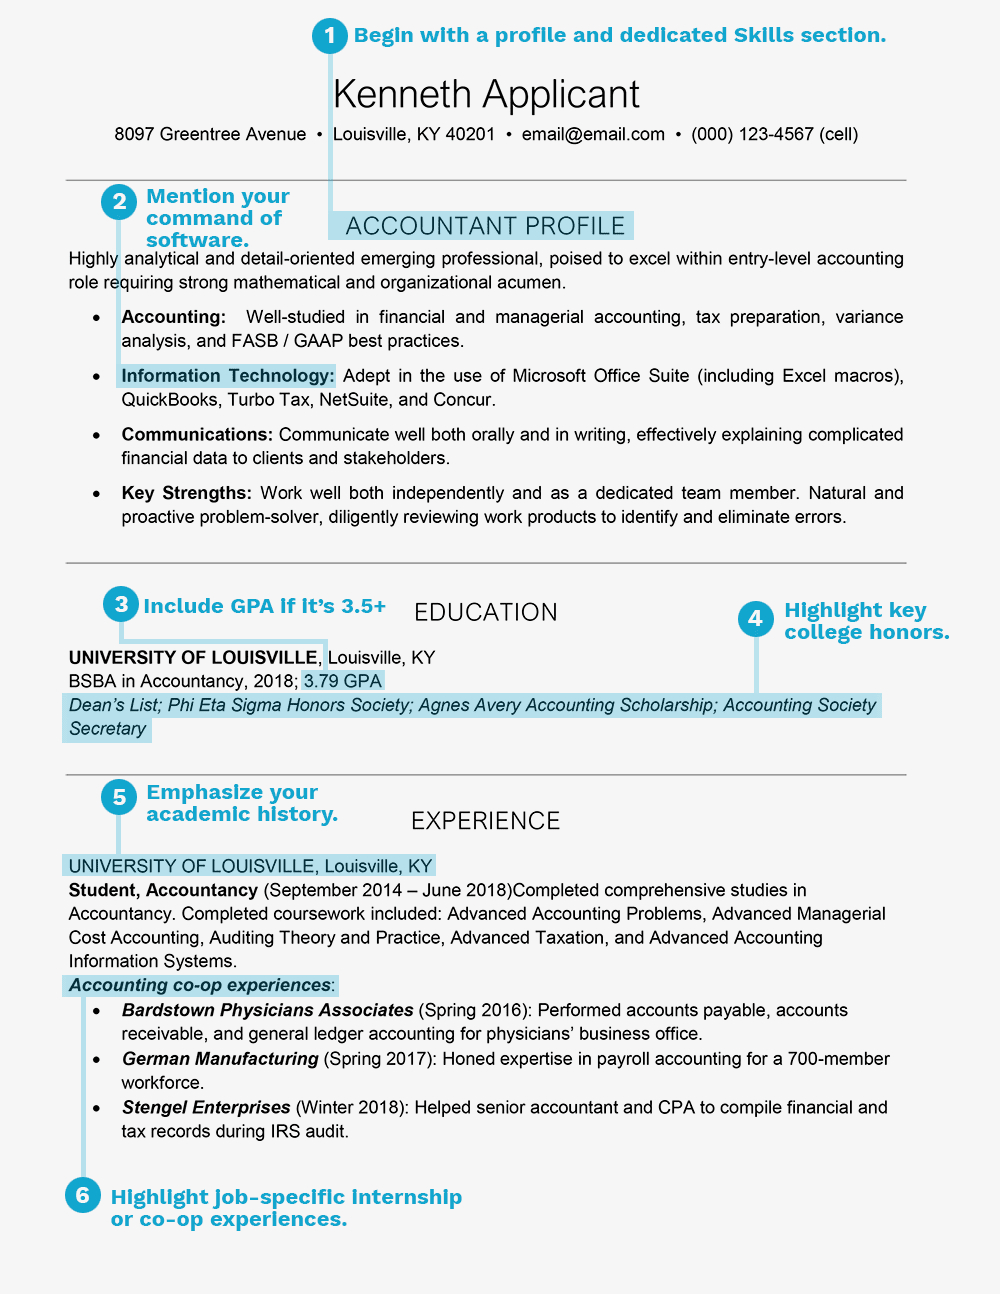 Resume Template for College Freshmen - Resume Tips for College Students and Graduates